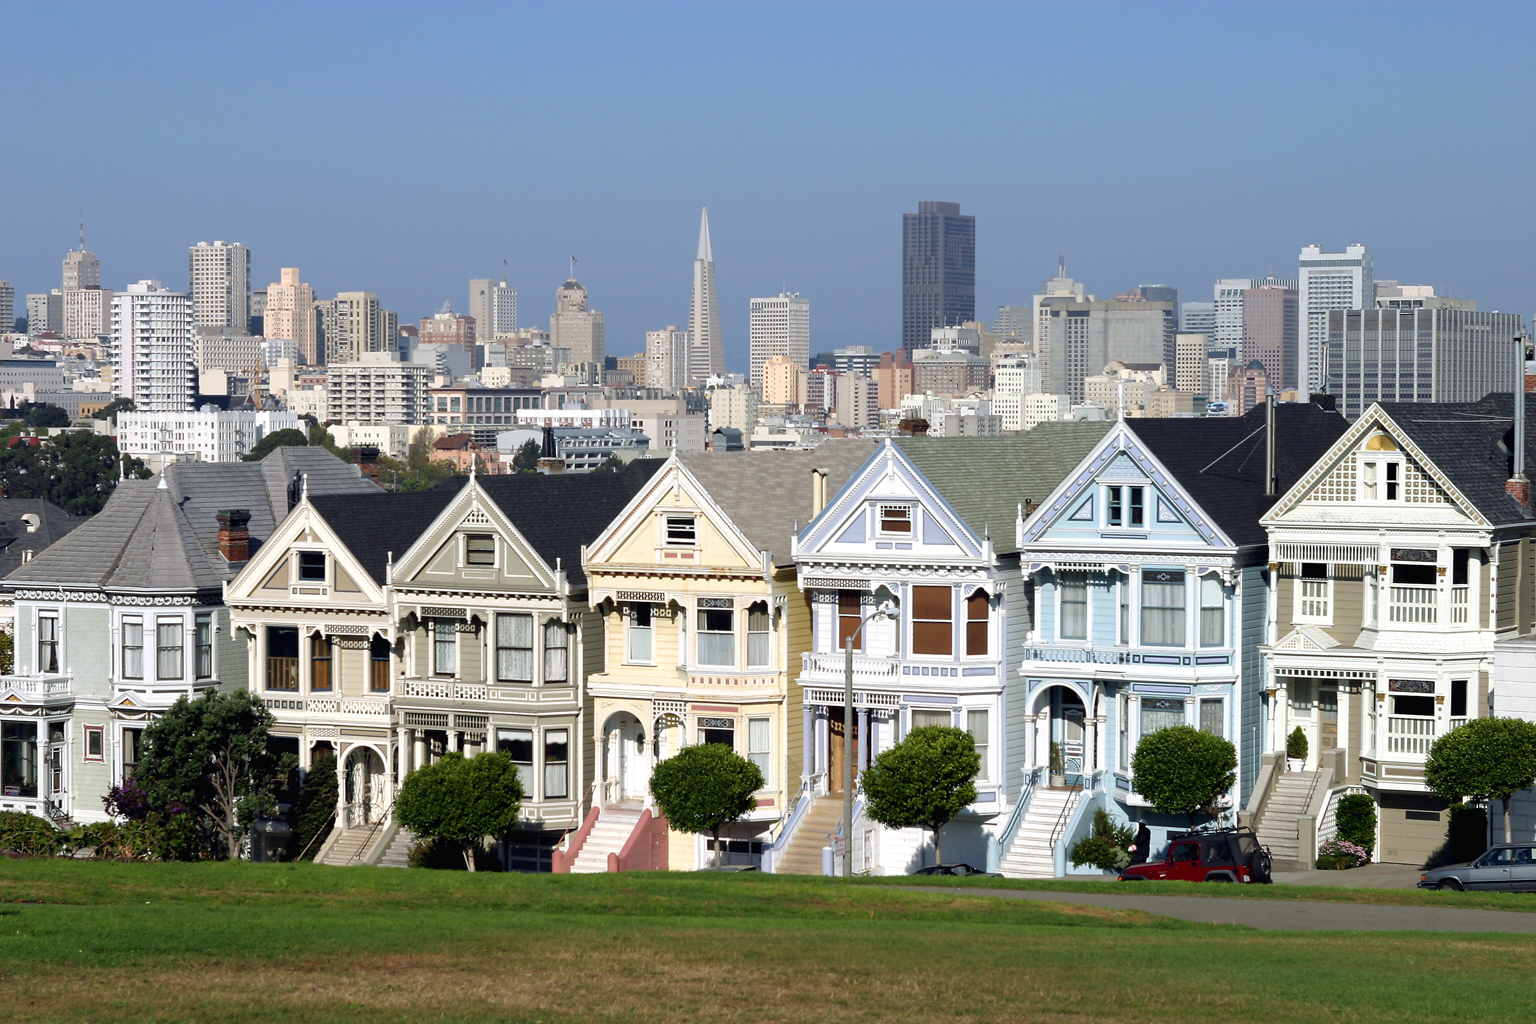 The Painted Ladies Houses